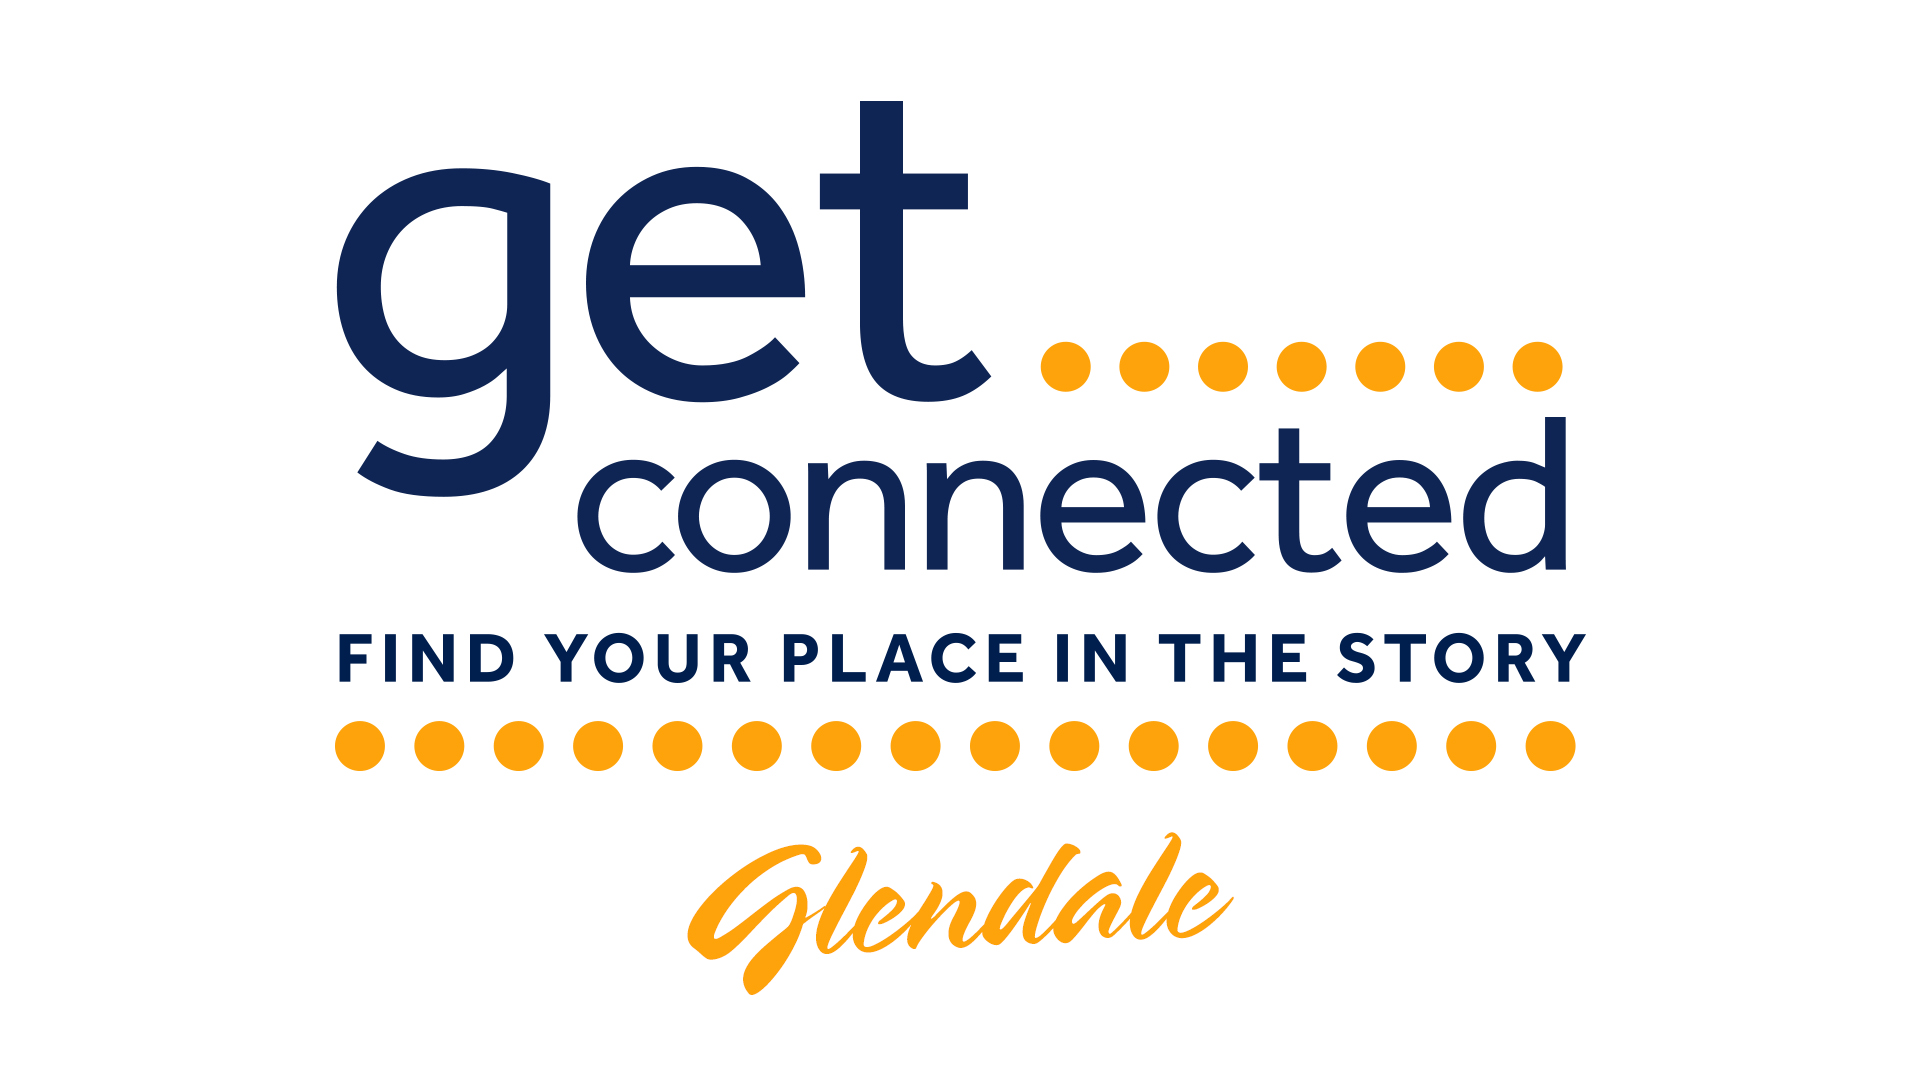 Get connected gdl